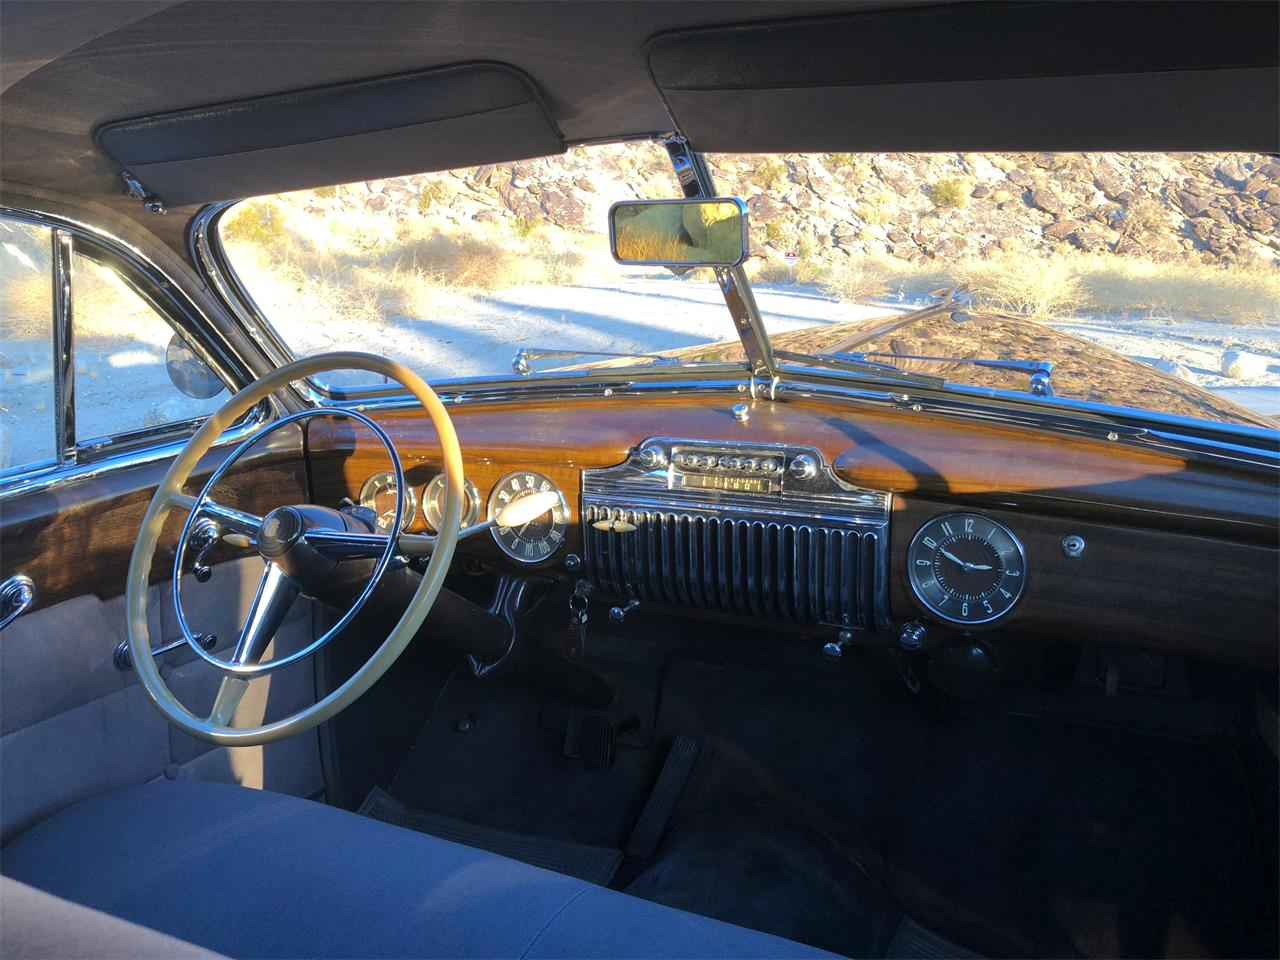 Large Picture of Classic '46 Cadillac Fleetwood 60 Special located in California - $42,500.00 Offered by a Private Seller - QMKK